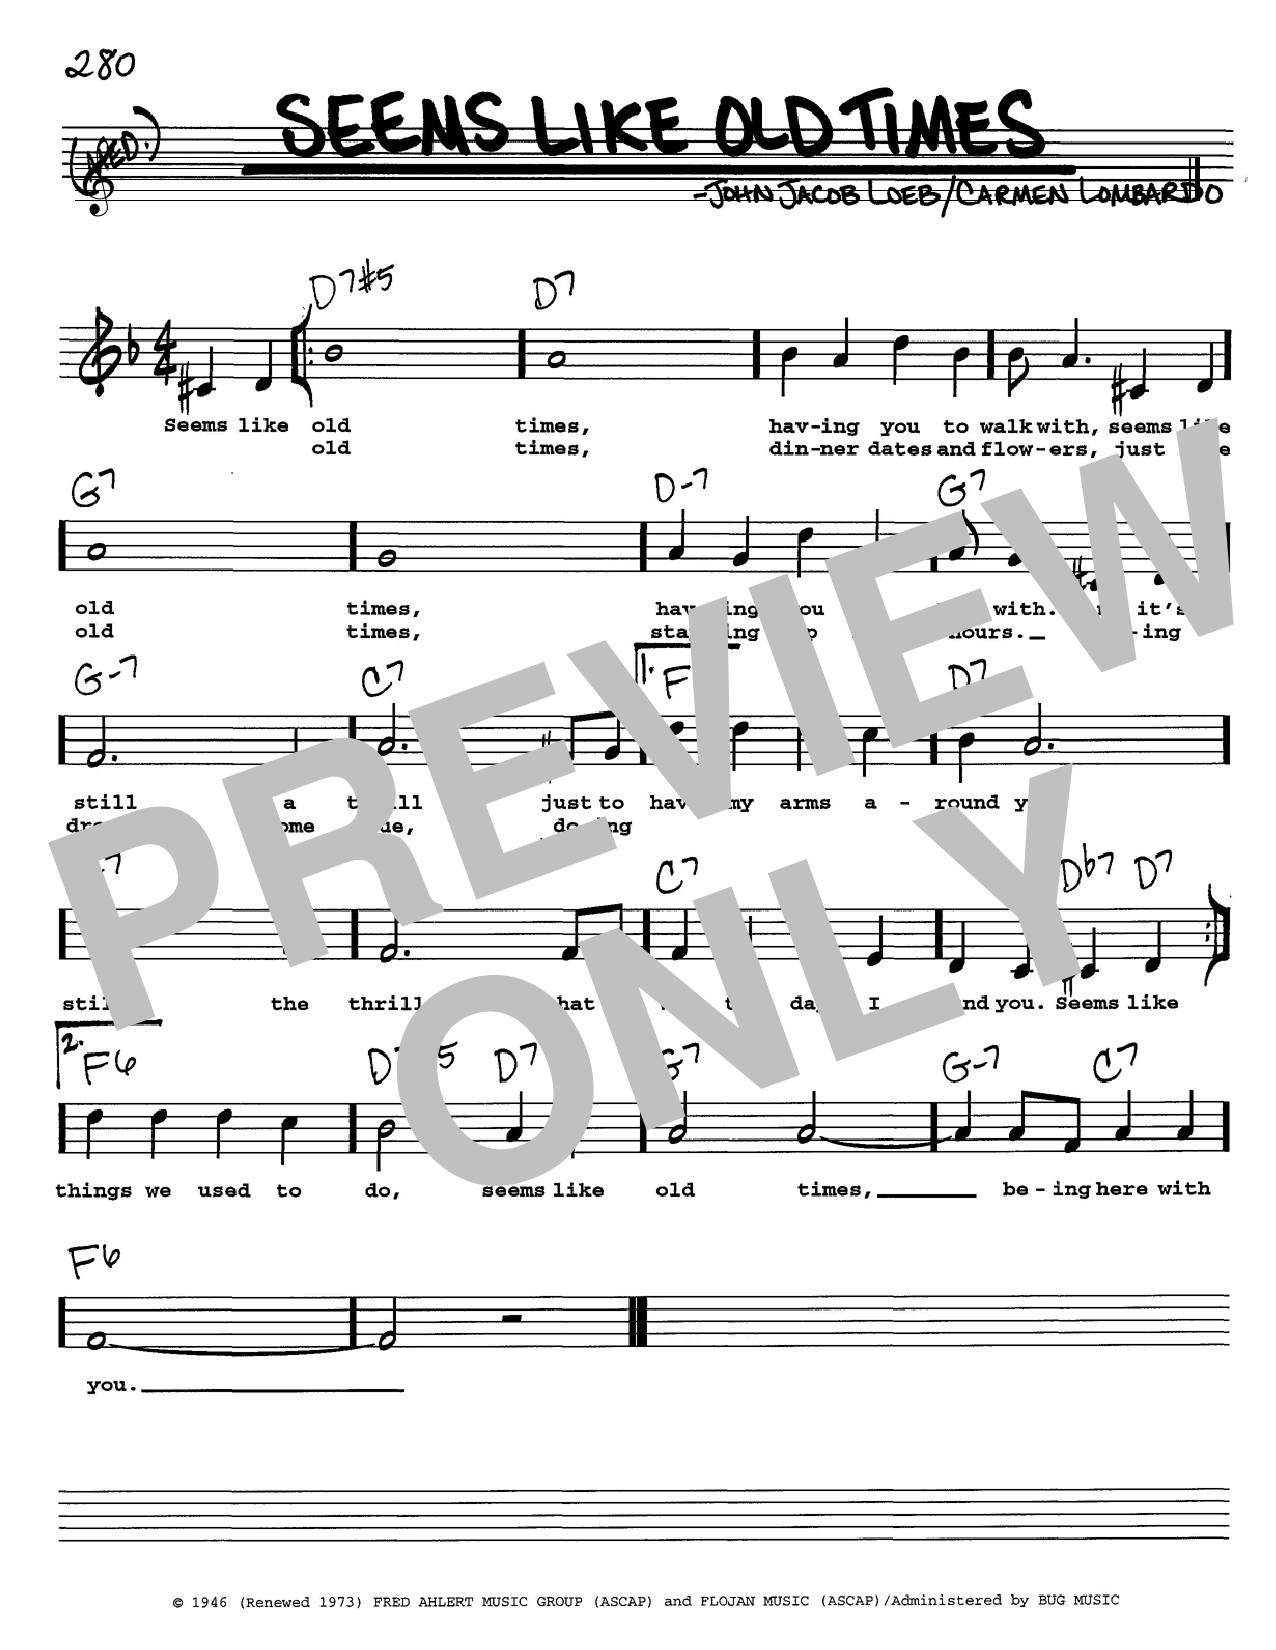 John Jacob Loeb Seems Like Old Times sheet music notes and chords. Download Printable PDF.